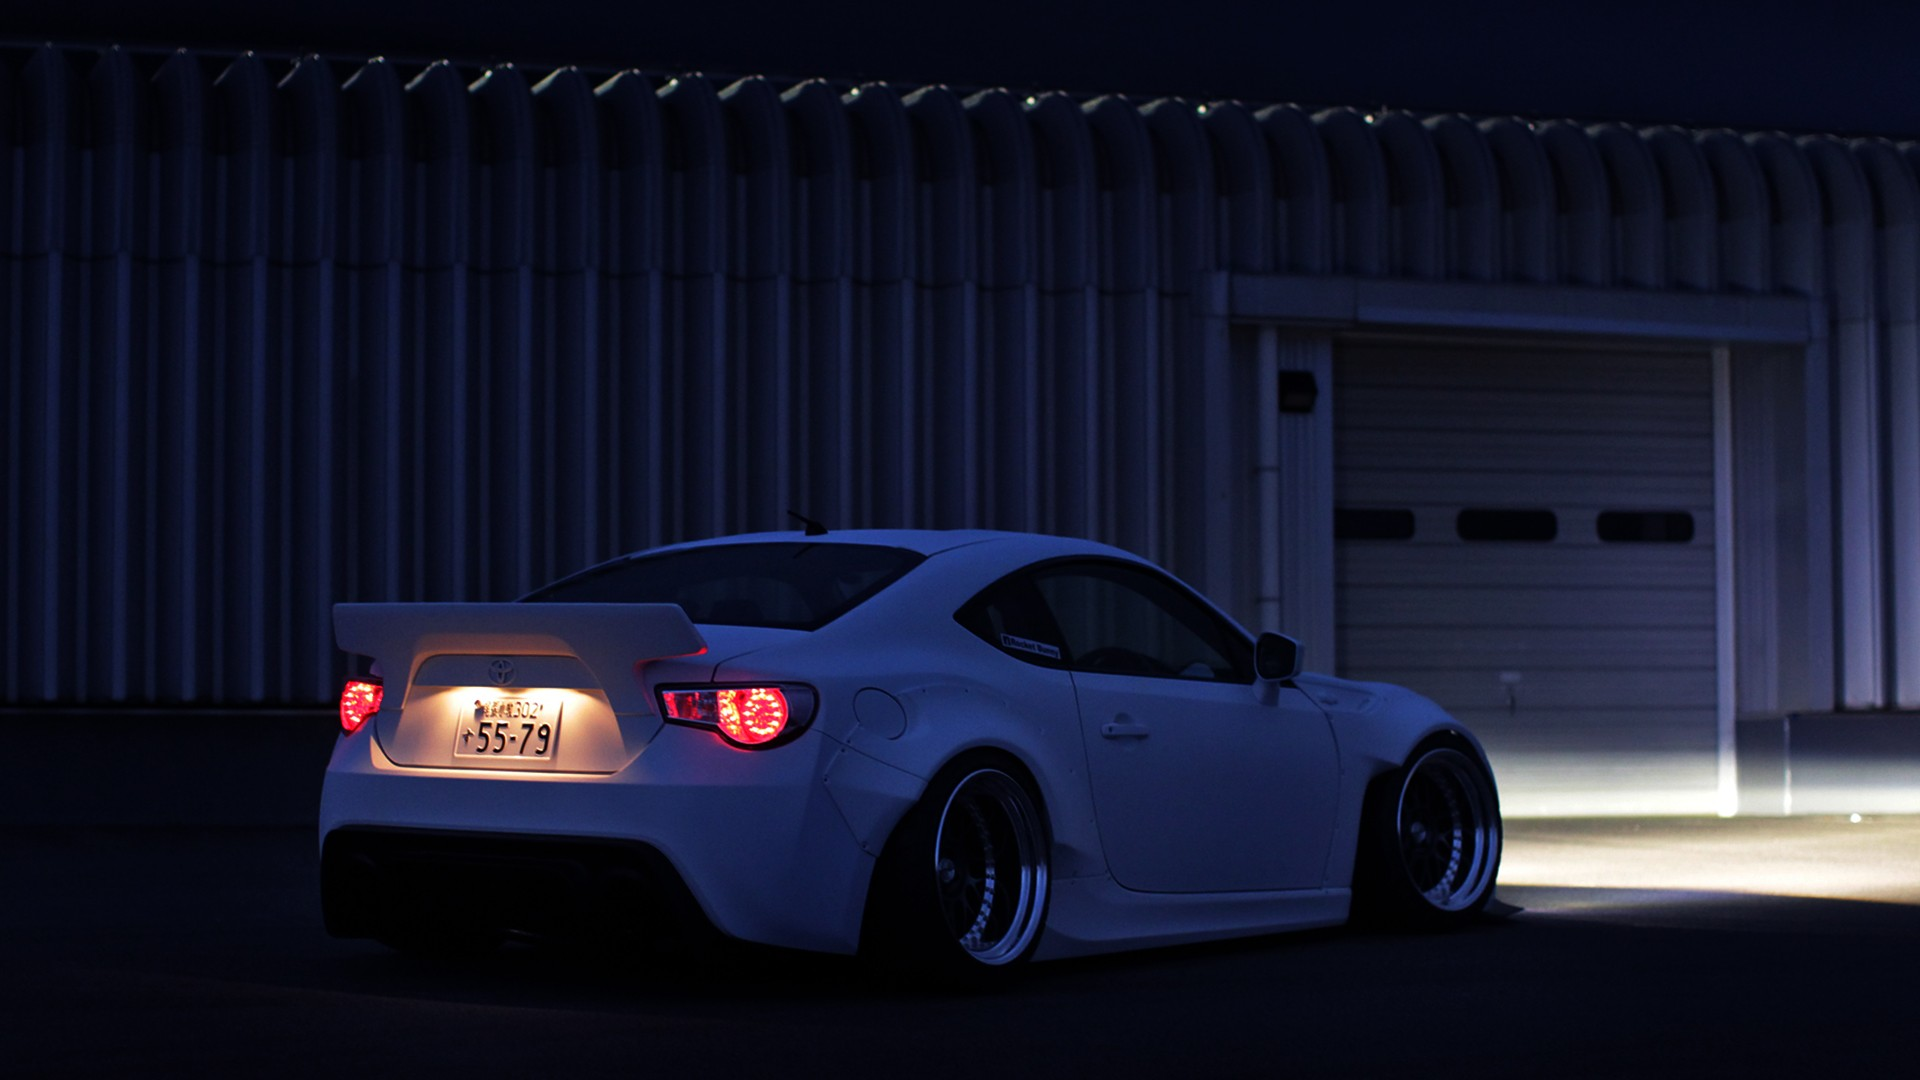 toyota, toyota 86, jdm, japanese cars, rocket bunny wallpapers hd